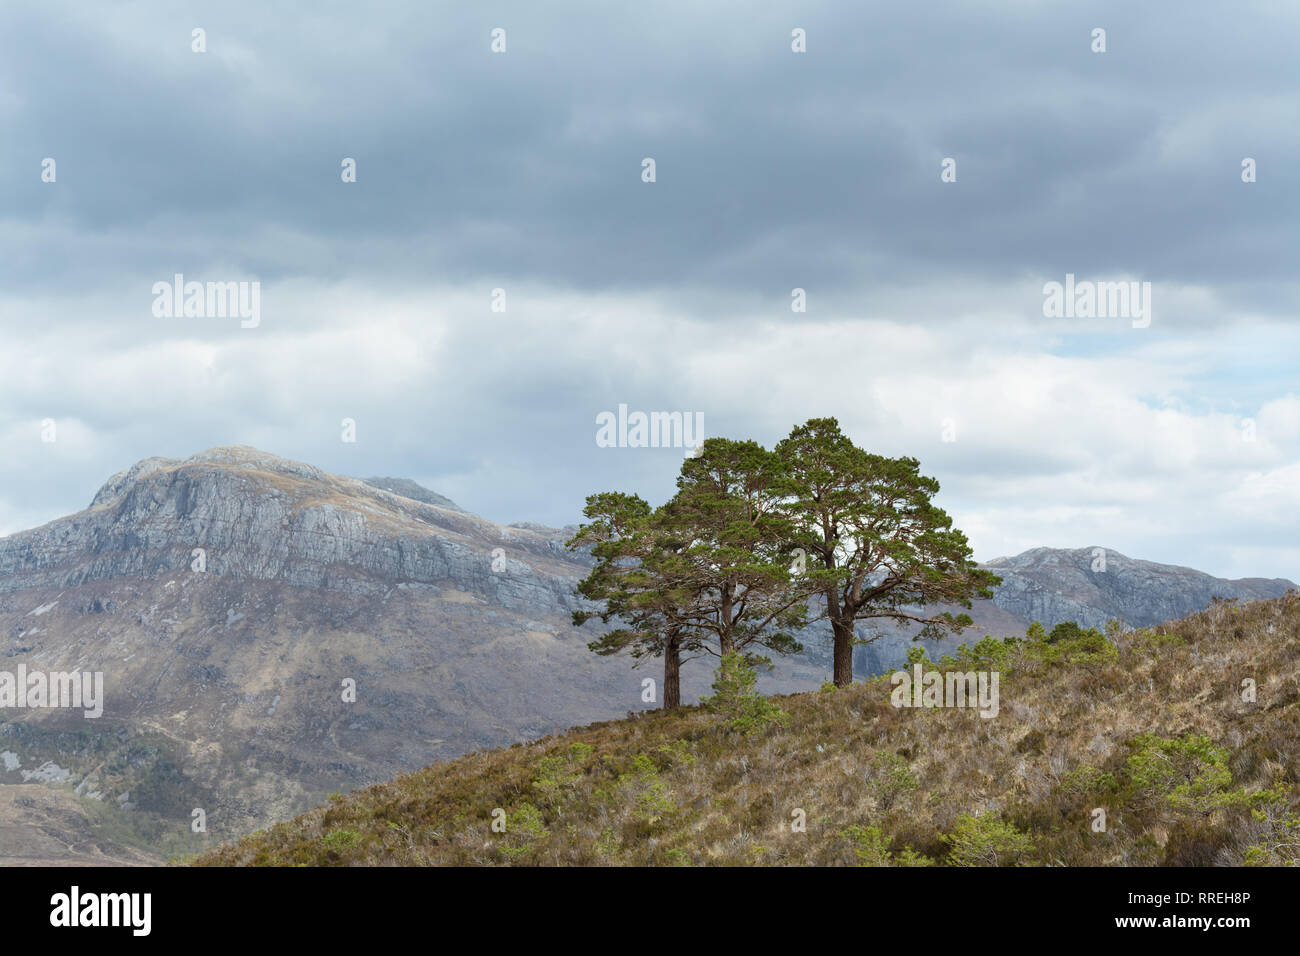 Scots Pines - Pinus sylvestris - remnants of the ancient Caledonian Forest - Beinn Eighe National Nature Reserve, Scottish Highlands, UK - Stock Image